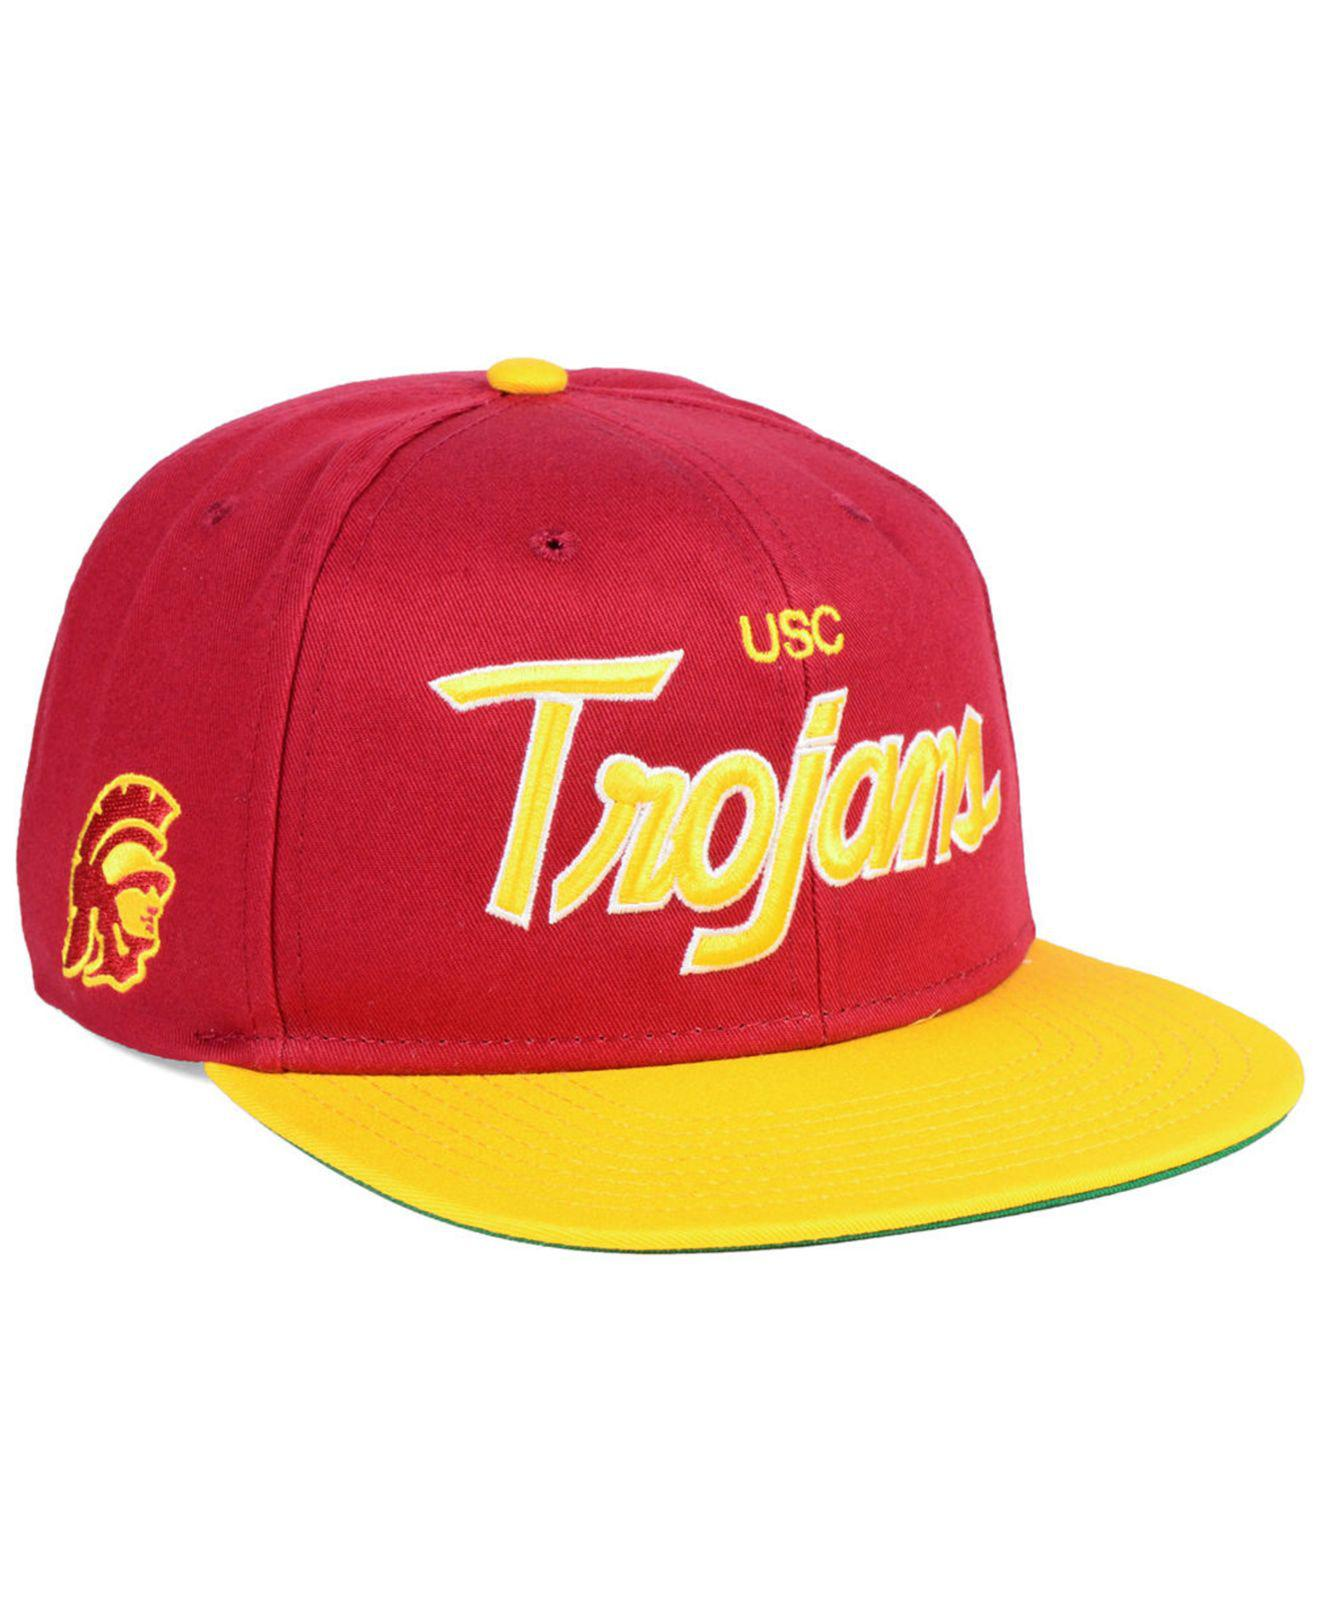 brand new 666c1 05be8 ... coupon for nike. mens red usc trojans sport specialties snapback cap  42774 fd442